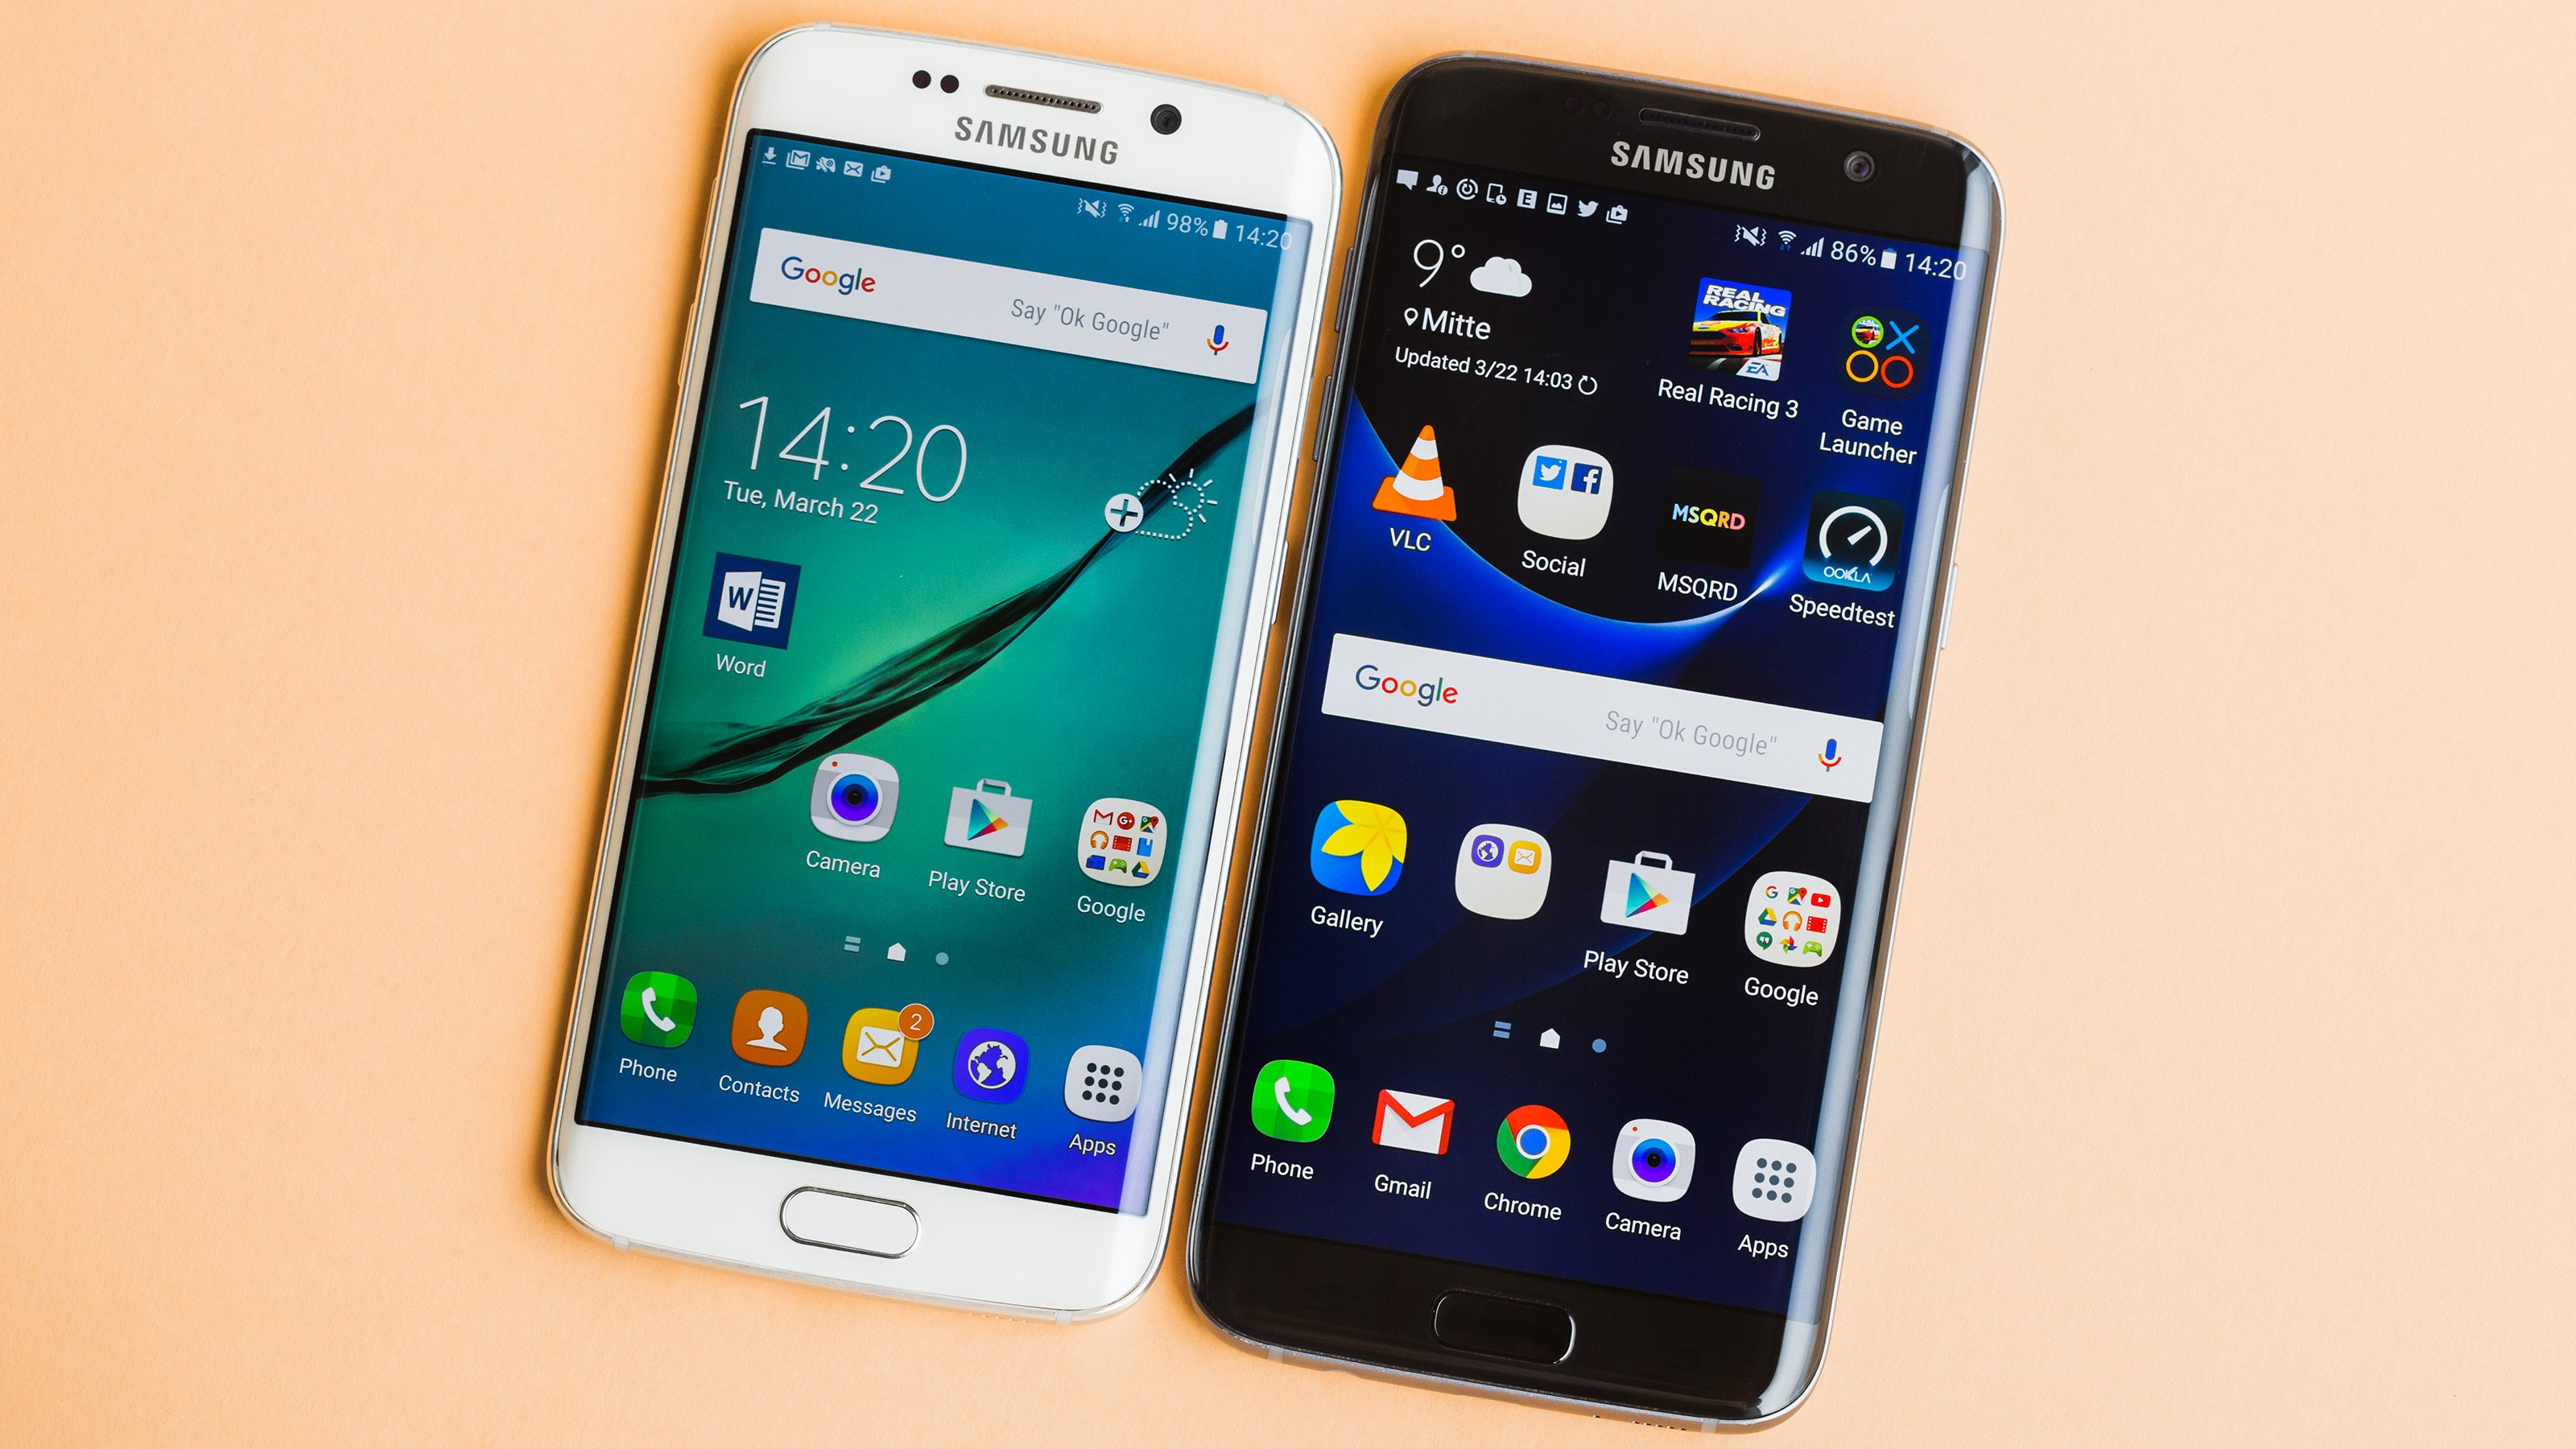 samsung galaxy s6 edge vs galaxy s7 edge comparison androidpit